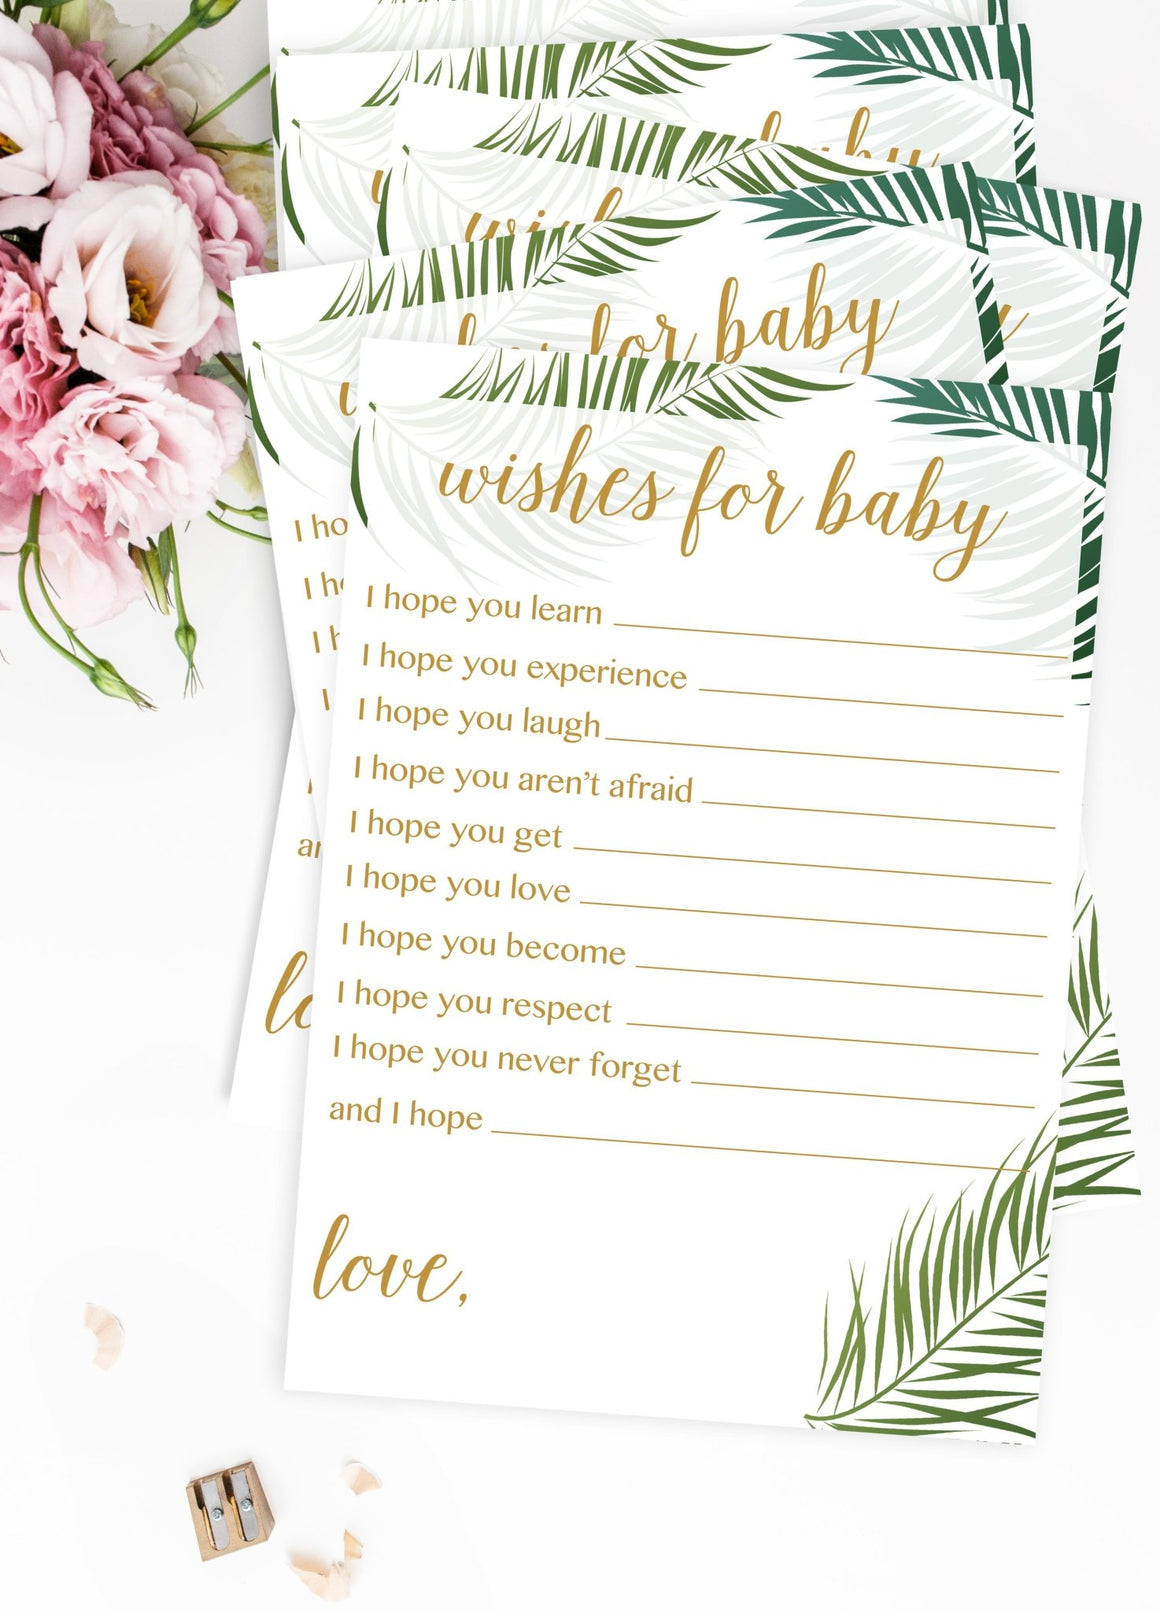 Wishes for Baby - Tropical Printable - Pretty Collected